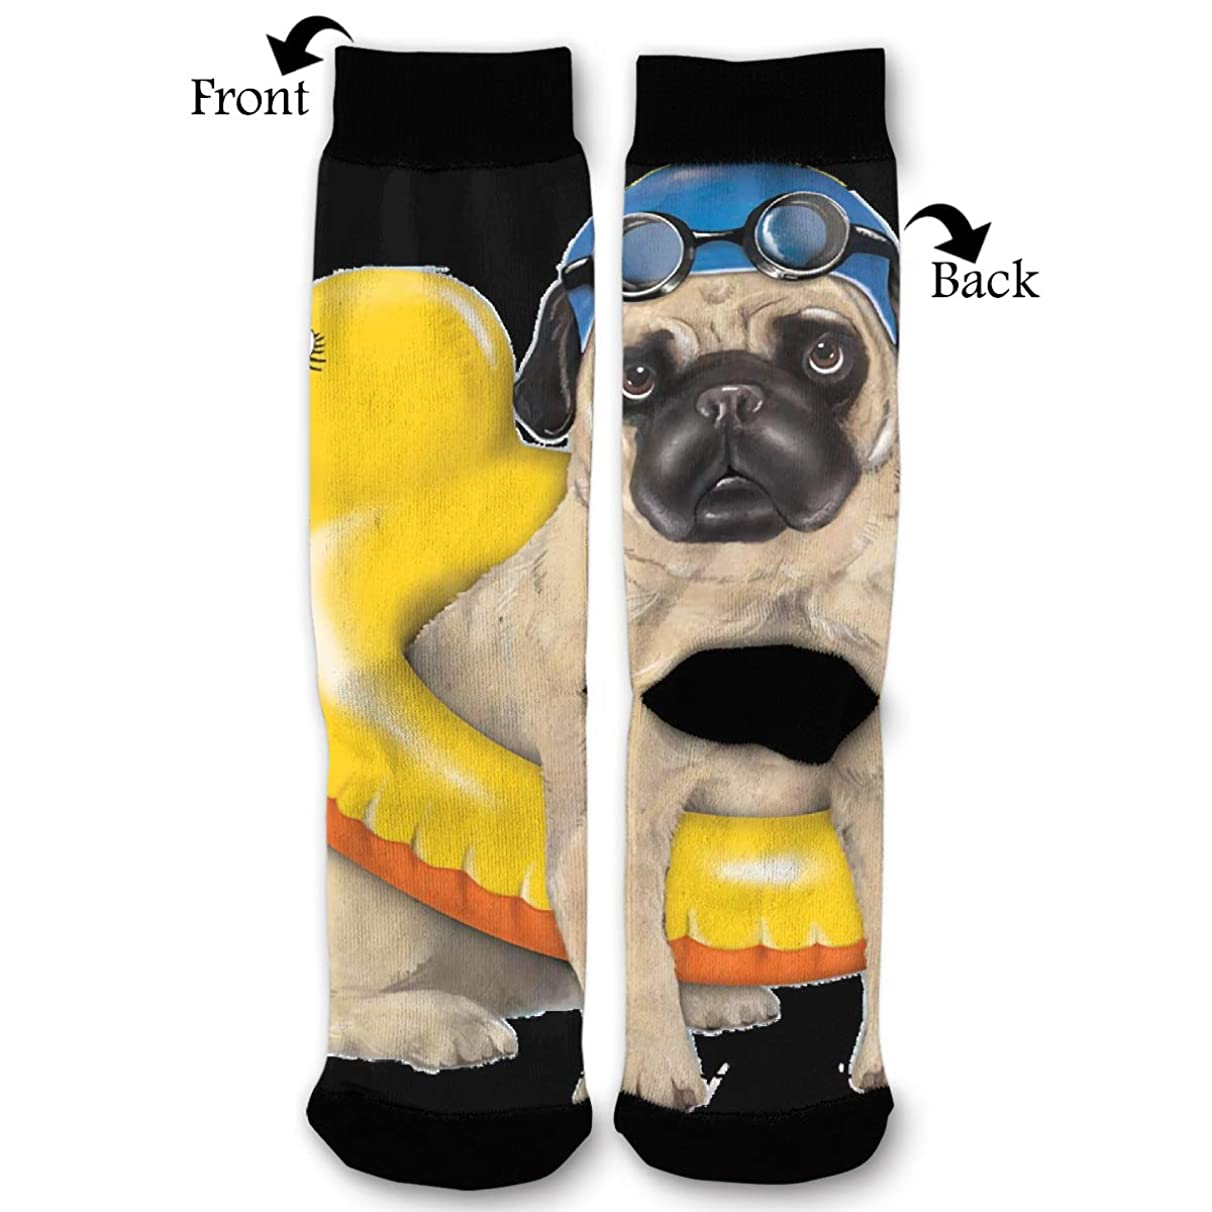 Summer Swimming Pug Dog Duck Lovely Quarter Dress Mid Calf Knee Crew Socks Calf Knit Hosiery Female Ladies Women Girl Teen Kid Youth Themed Clothing Party Clothes Dresses Apparel Ankle